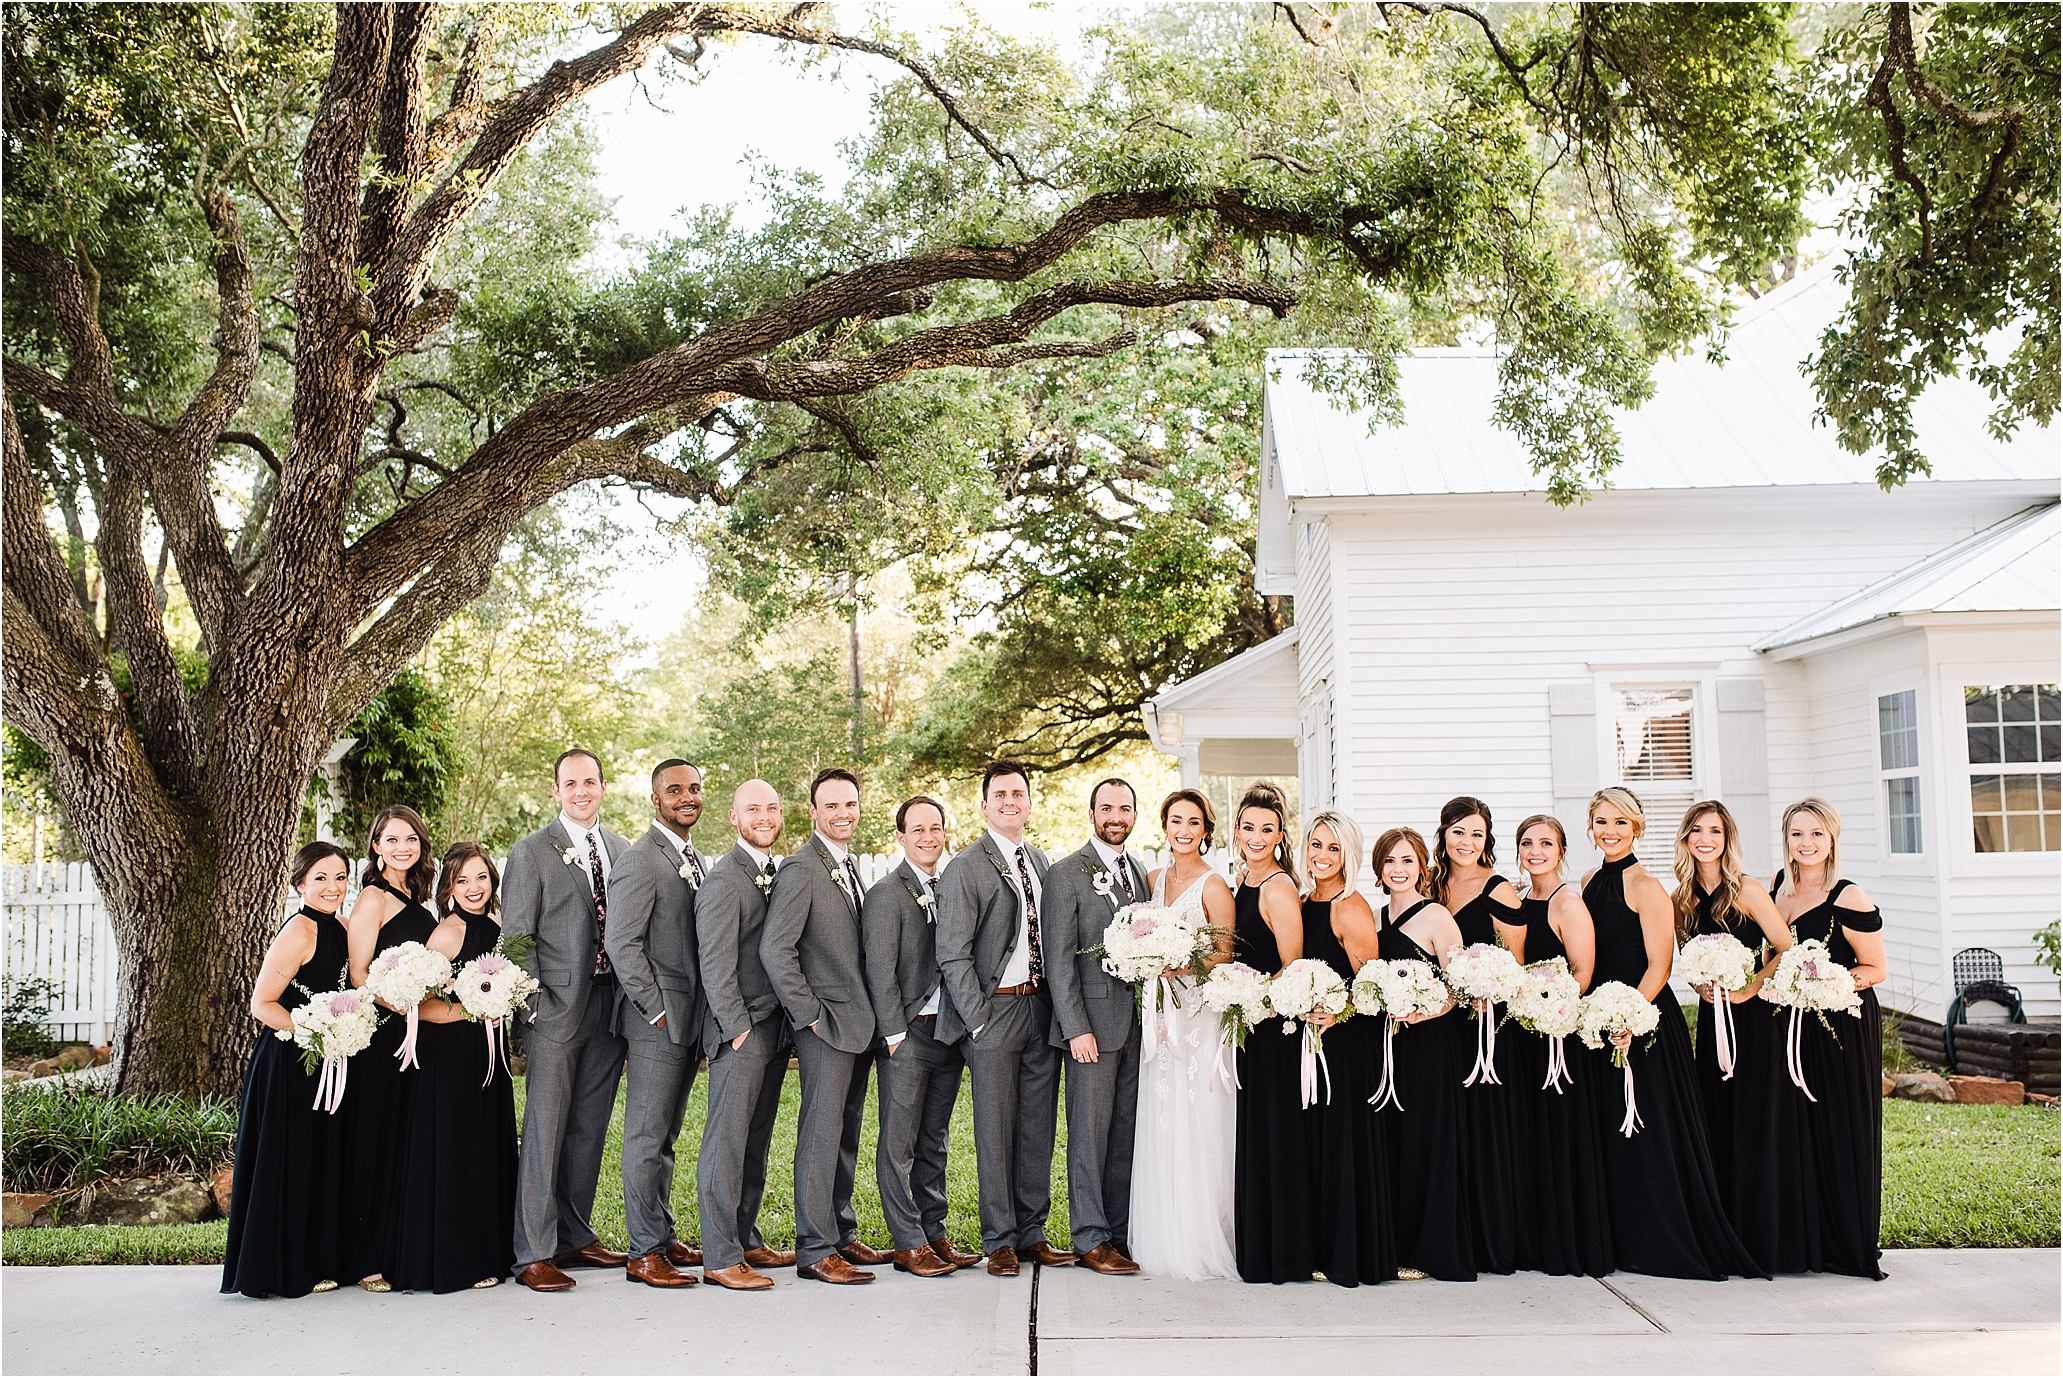 PattisonHouse_TexasWeddingPhotographer_CarlyCrockett&MattBrownWedding_0092.jpg